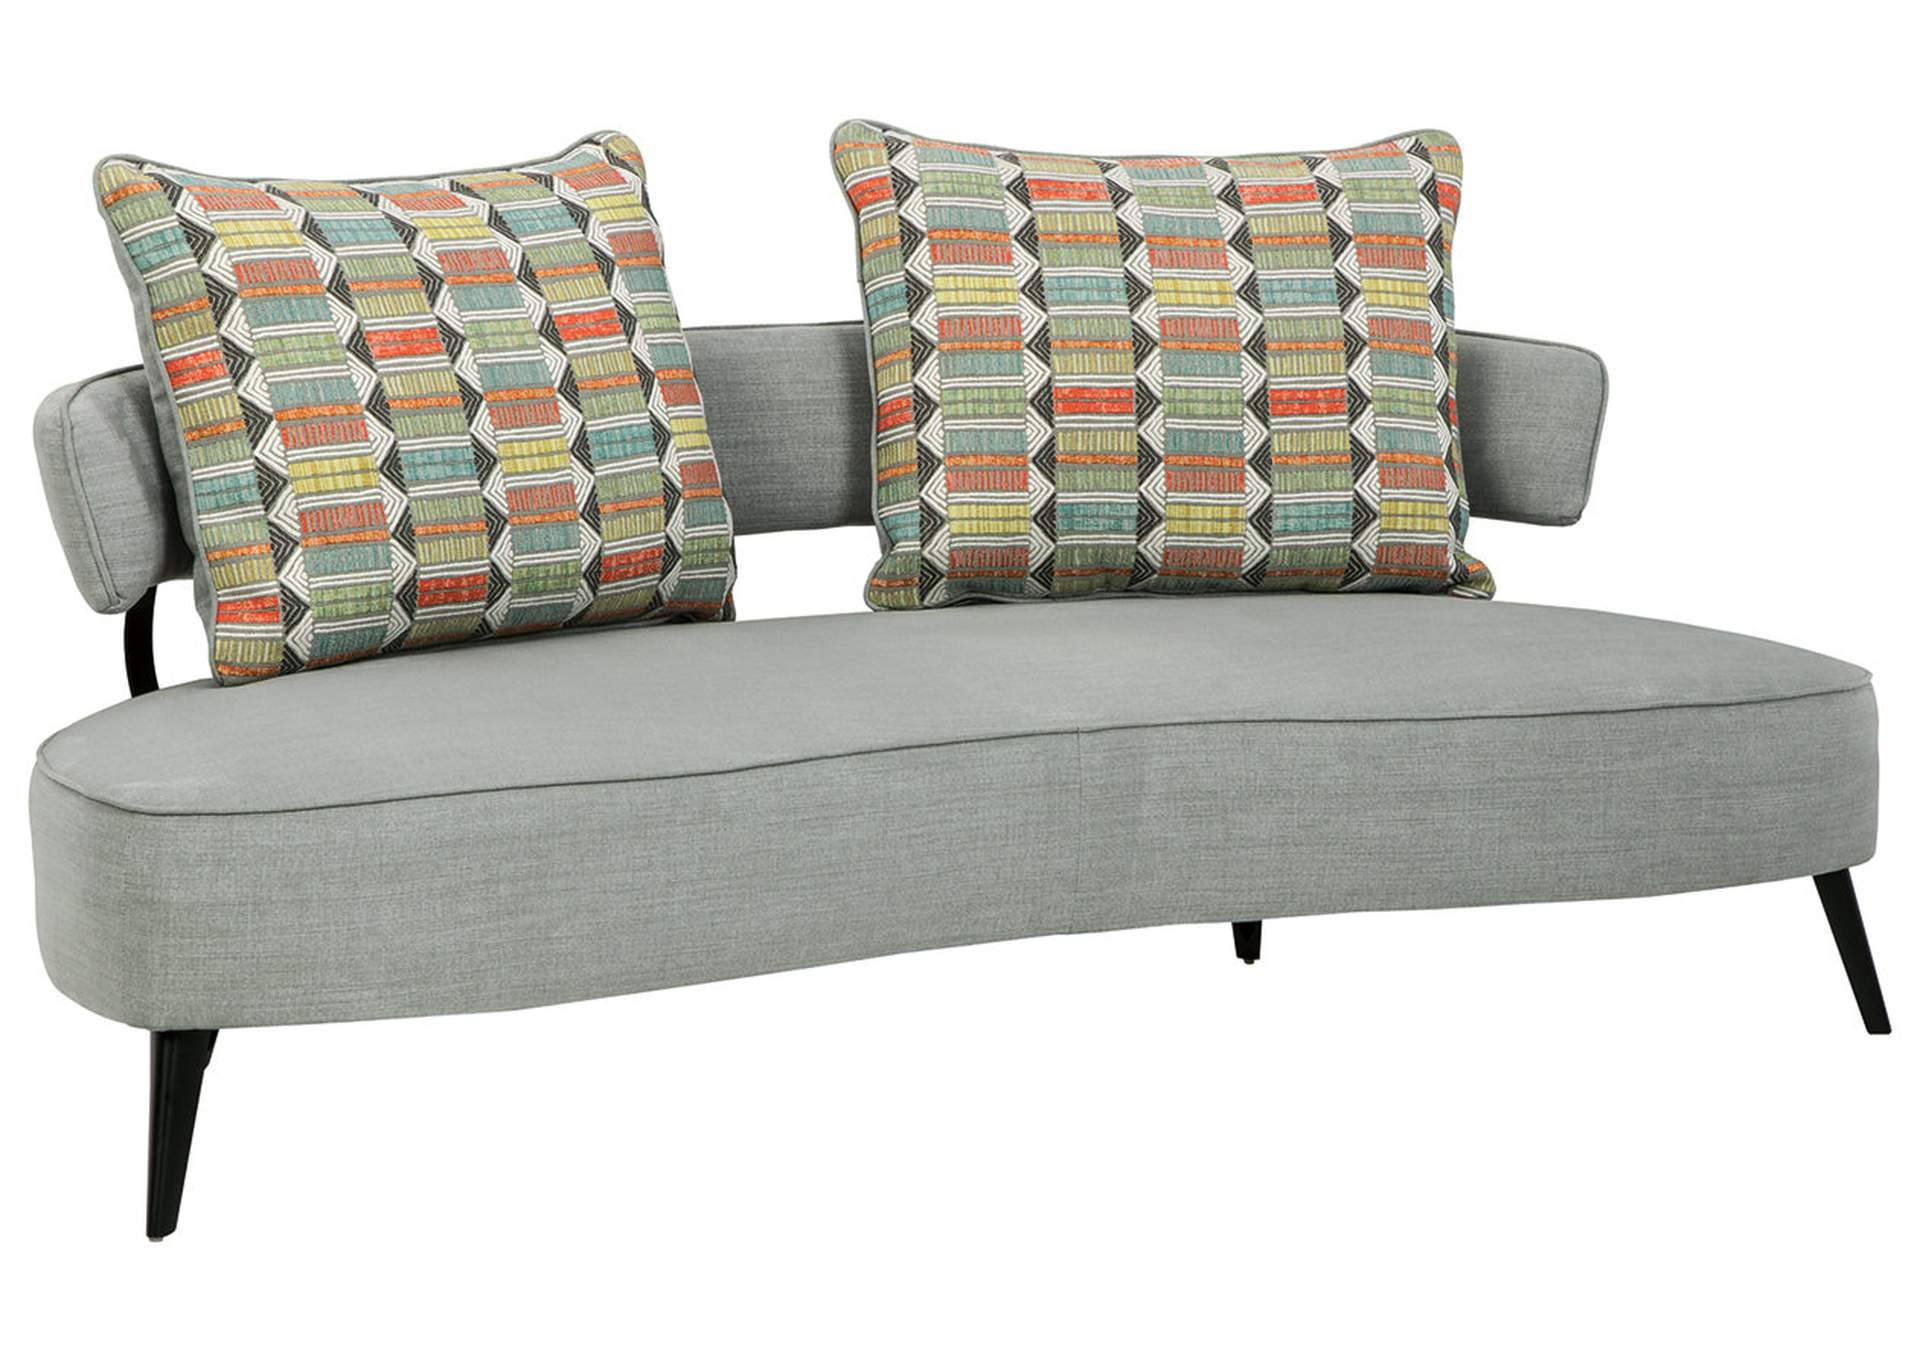 Hollyann RTA Sofa,Signature Design By Ashley